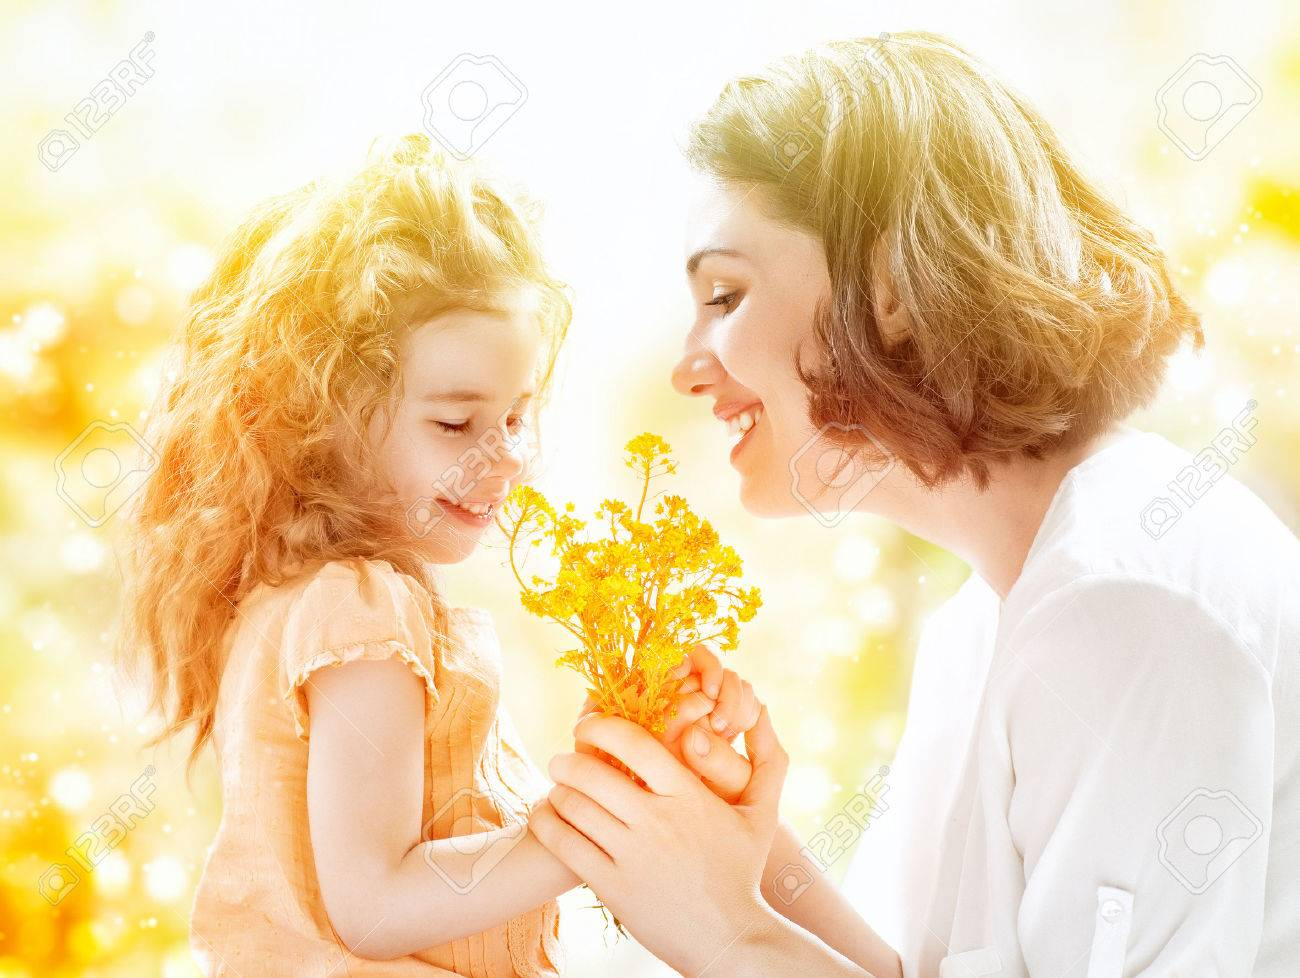 happy mother and child together Stock Photo - 29464424